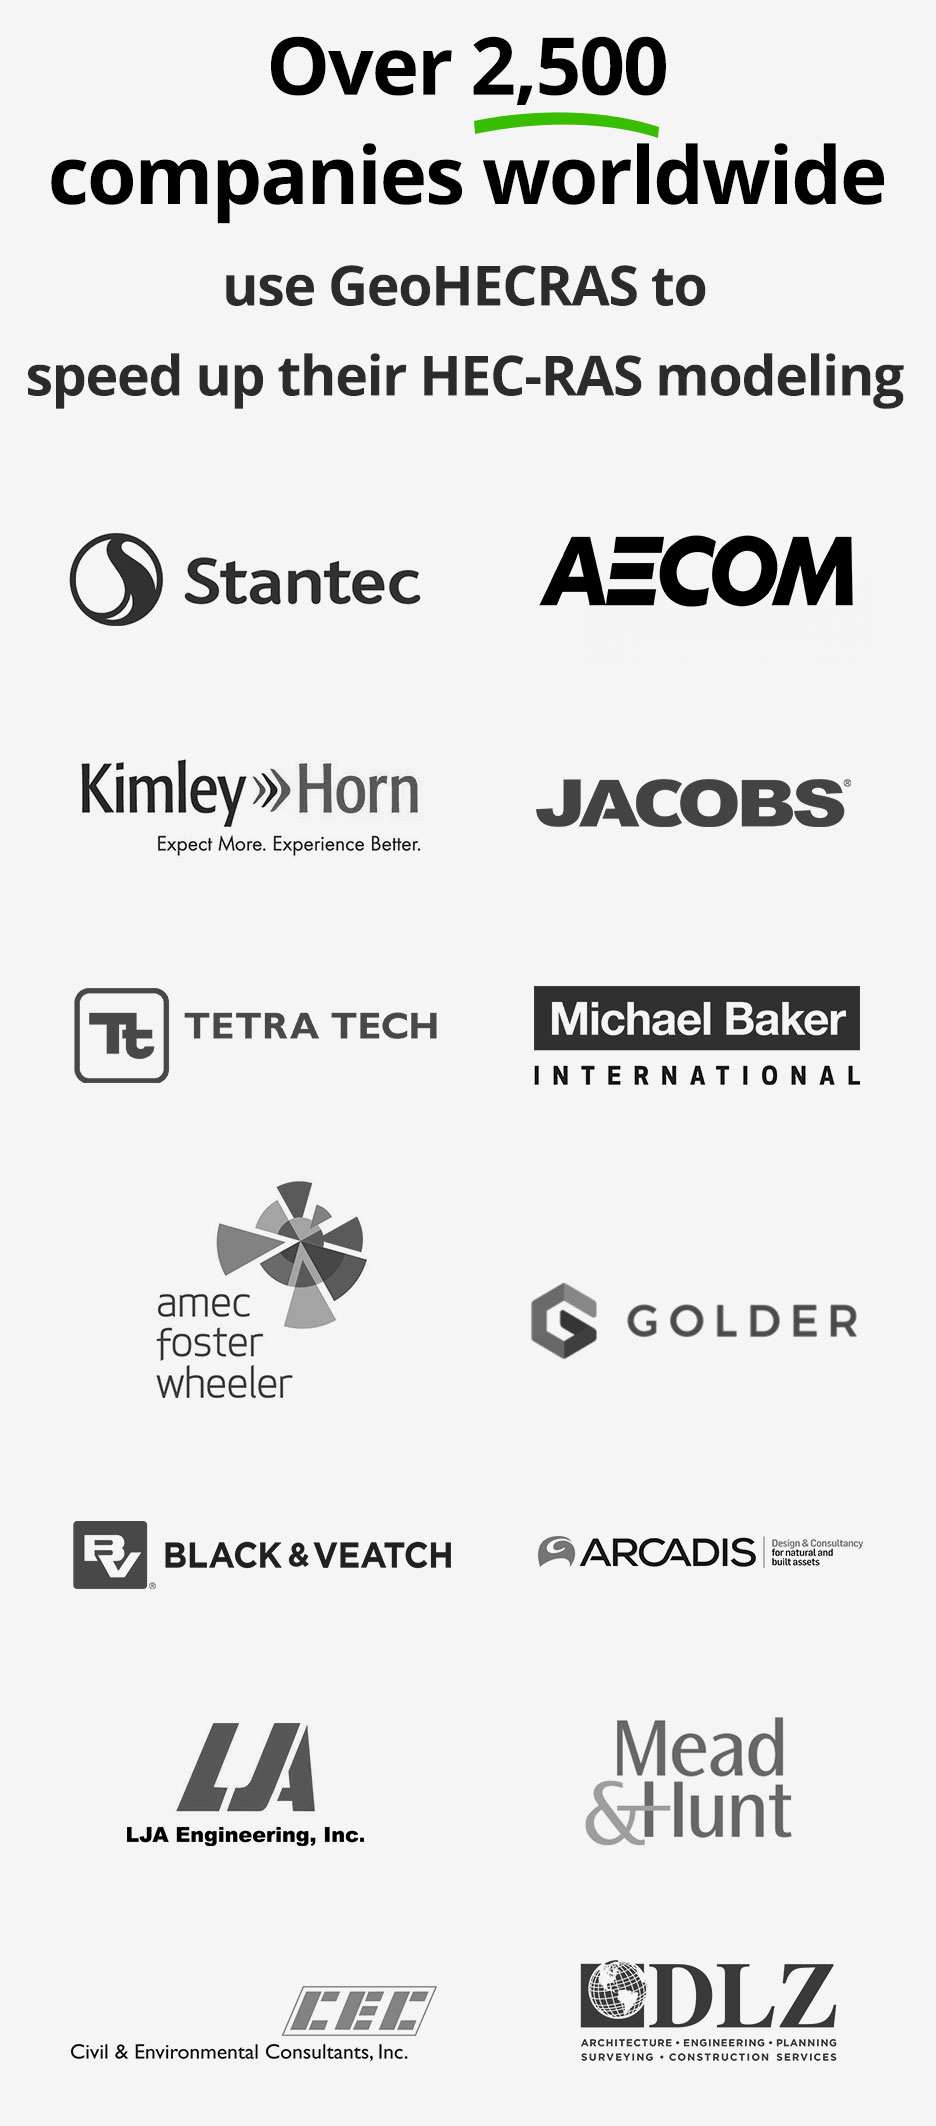 Over 2500 companies like Black & Veat, Arcadis, LJA Engineering, Mead & Hunt, CEC, DLZ use our products to speed up their engineering software